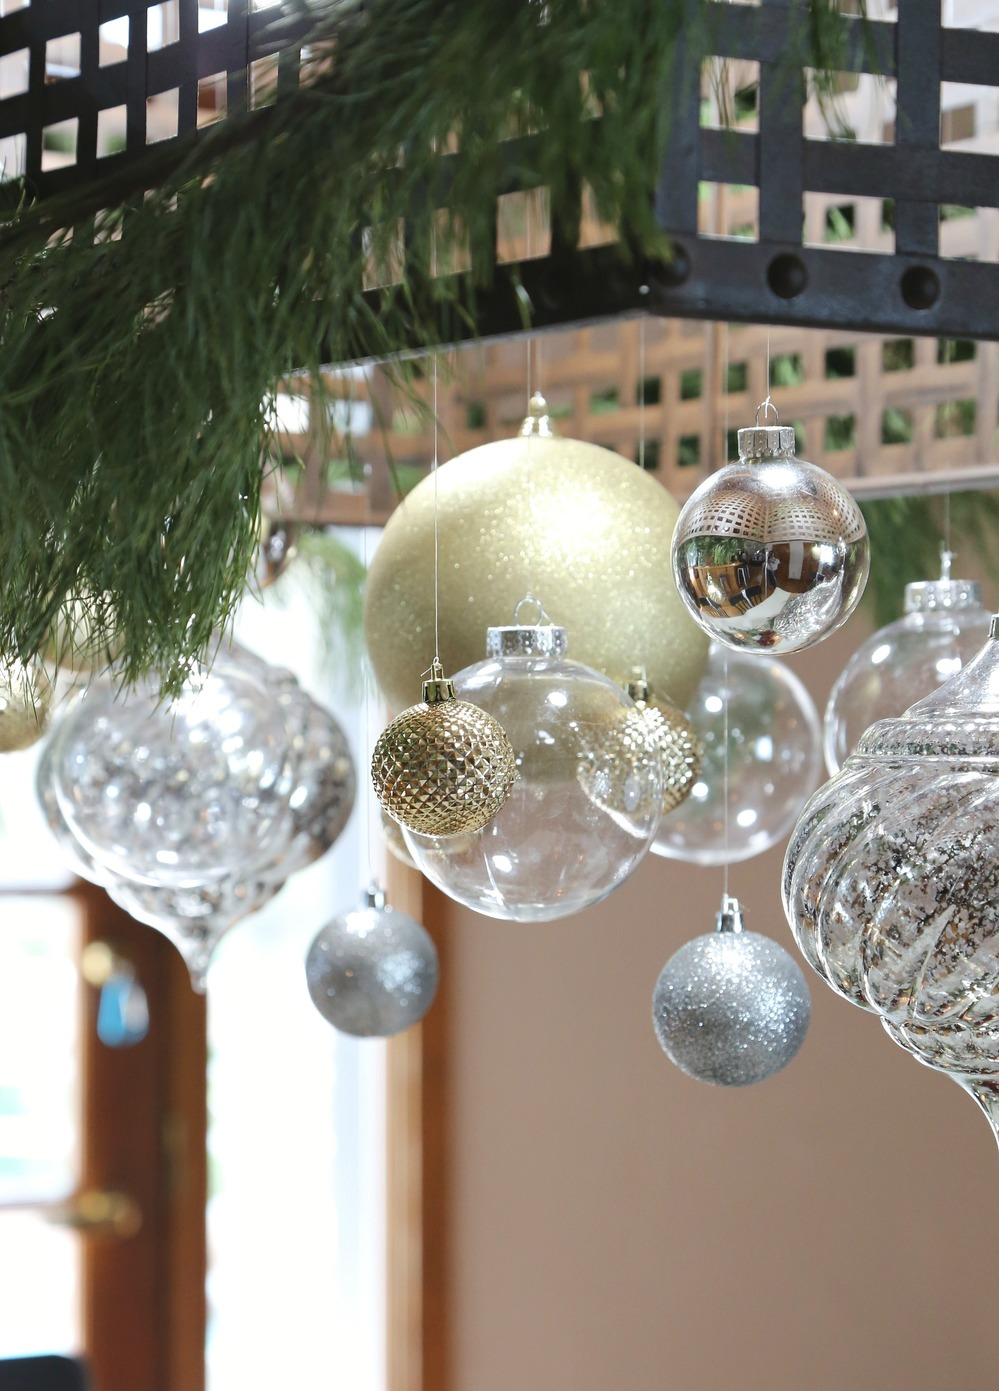 Christmas ornaments hanging from light fixture.